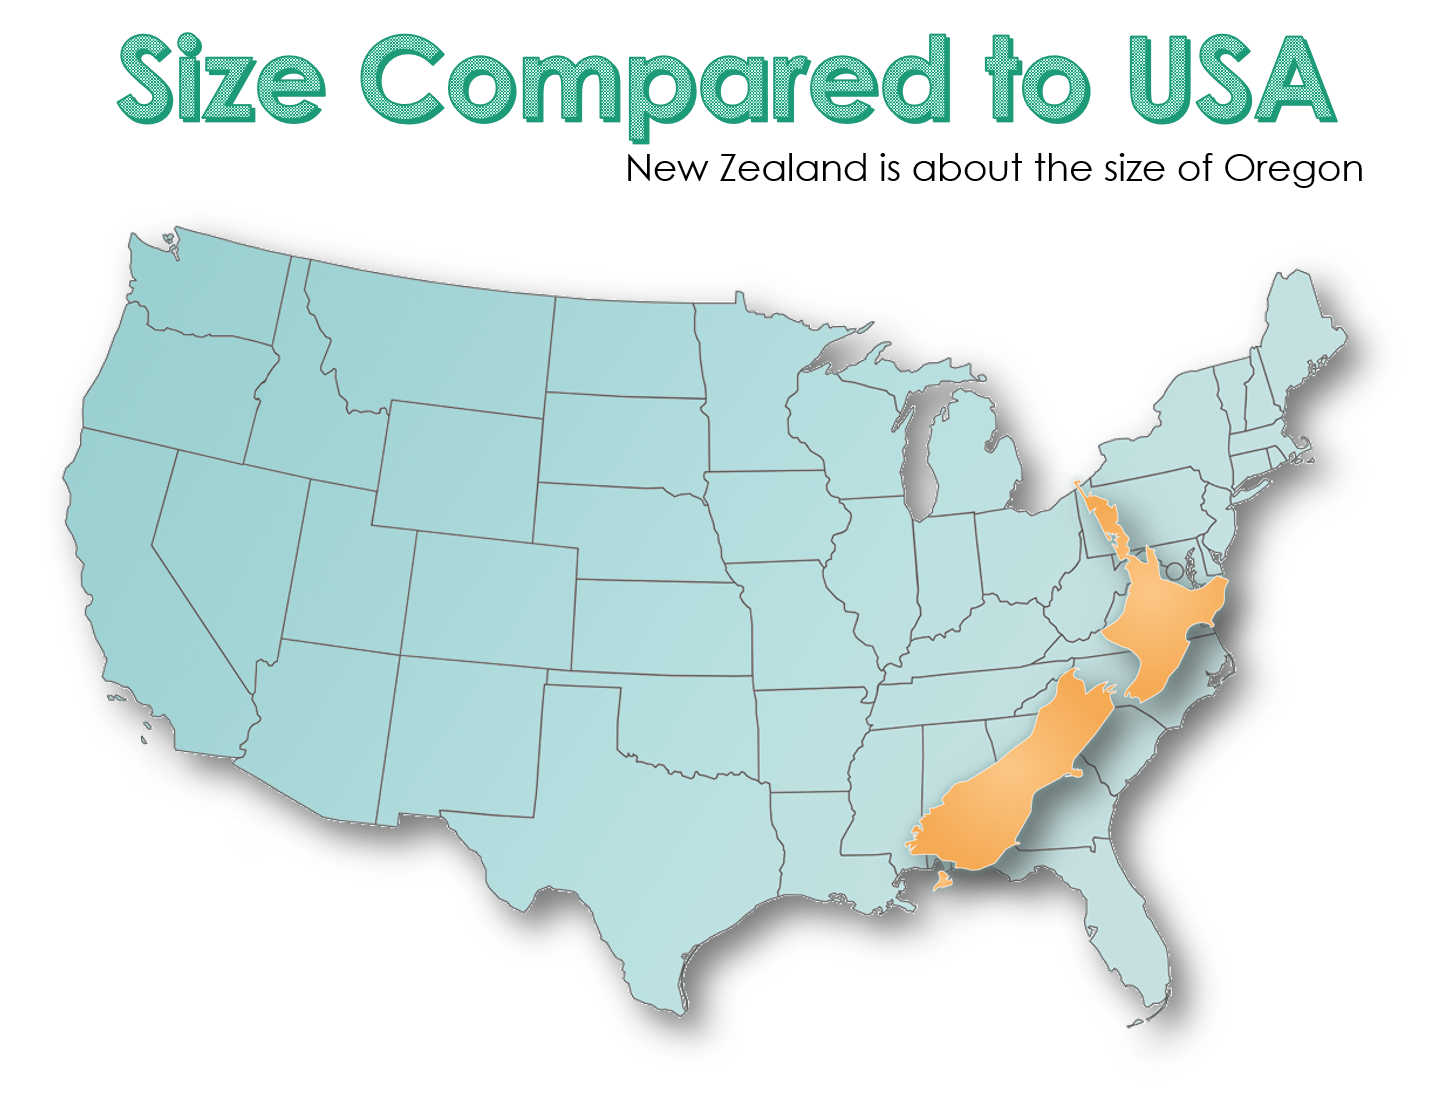 How big is New Zealand compared to USA? - About New Zealand Ud Map Of Usa on map of lo, map of general motors, map of vb, map of cr, map of ra, map of le, map of no, map of so, map of gr, map of ge, map of white, map of sa, map of re, map of kawasaki, map of sp, map of tv, map of ta, map of international, map of ch, map of pc,